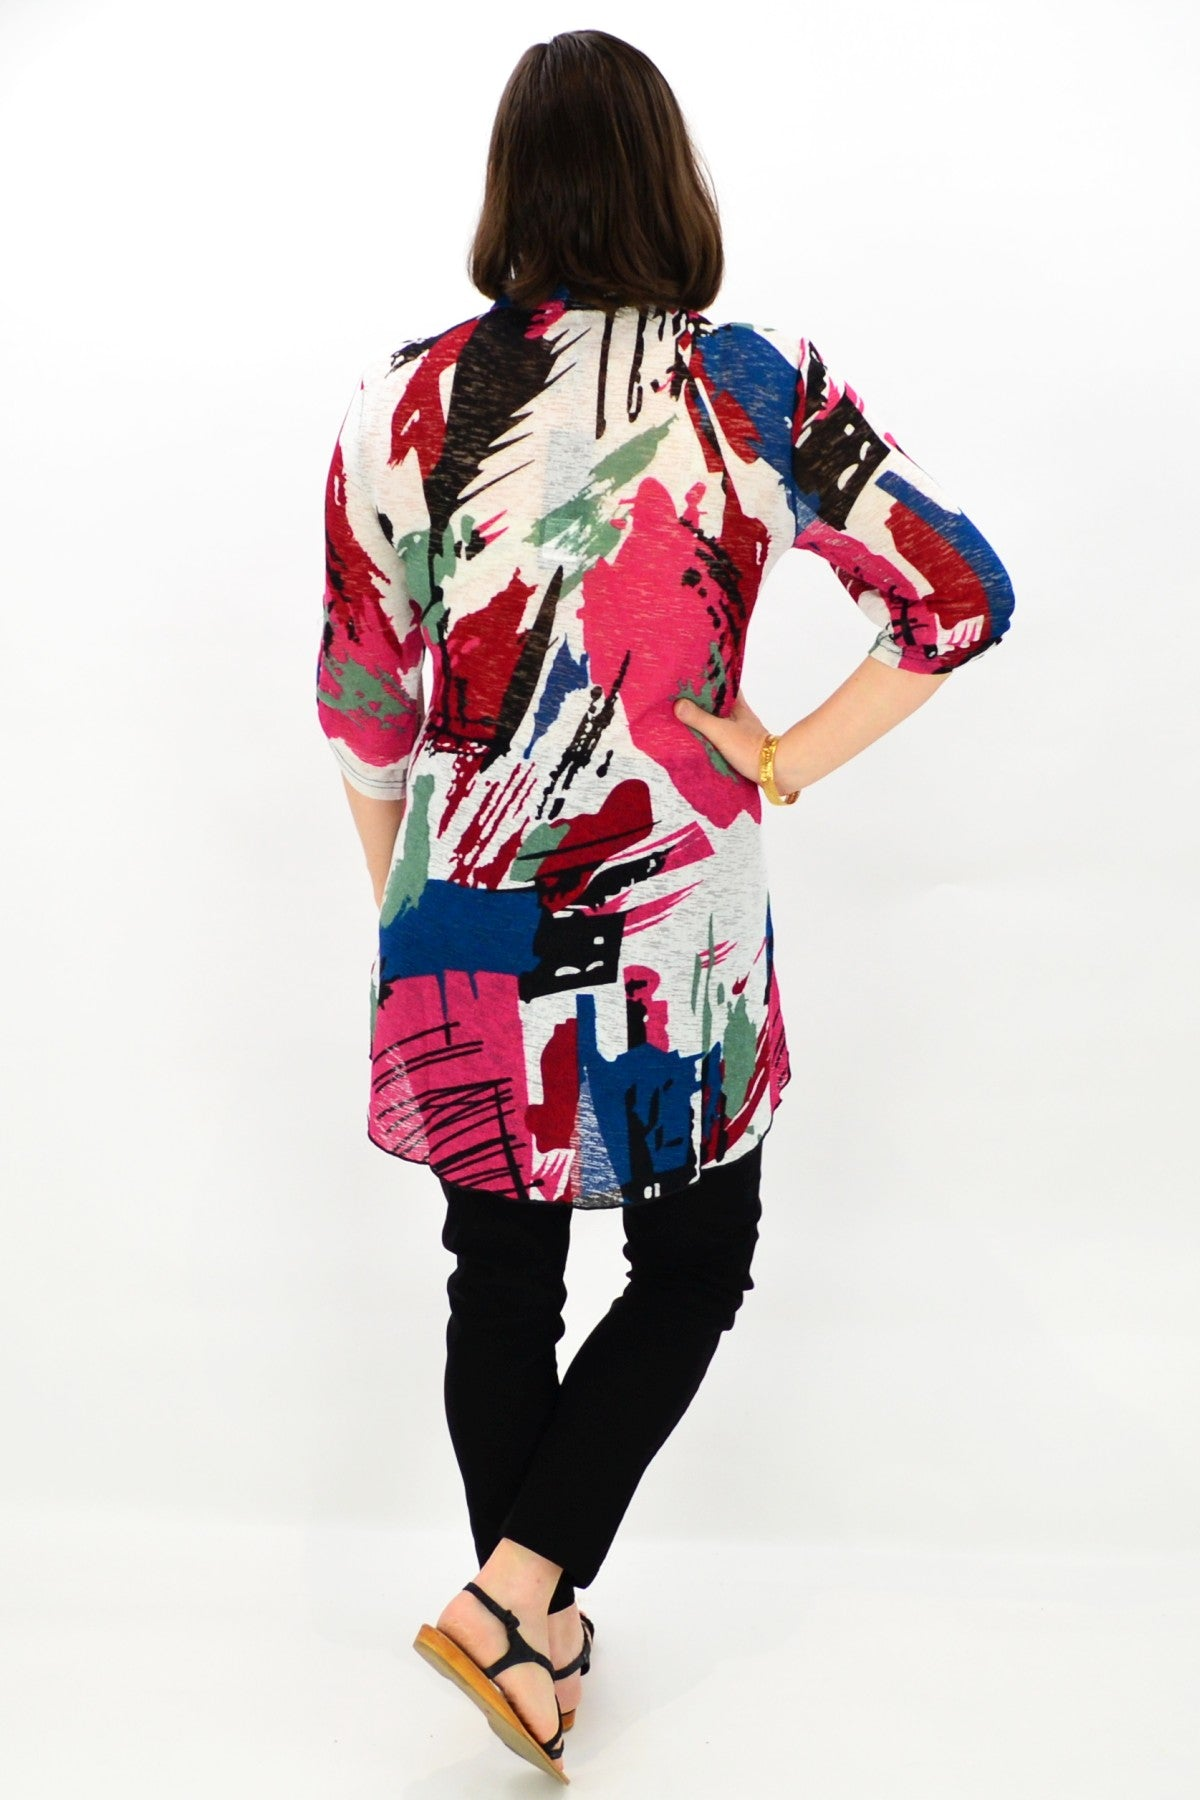 Model wearing Mesh Tunic Top by Lilia Whisper . Buy tunics tops online at ilovetunics.com